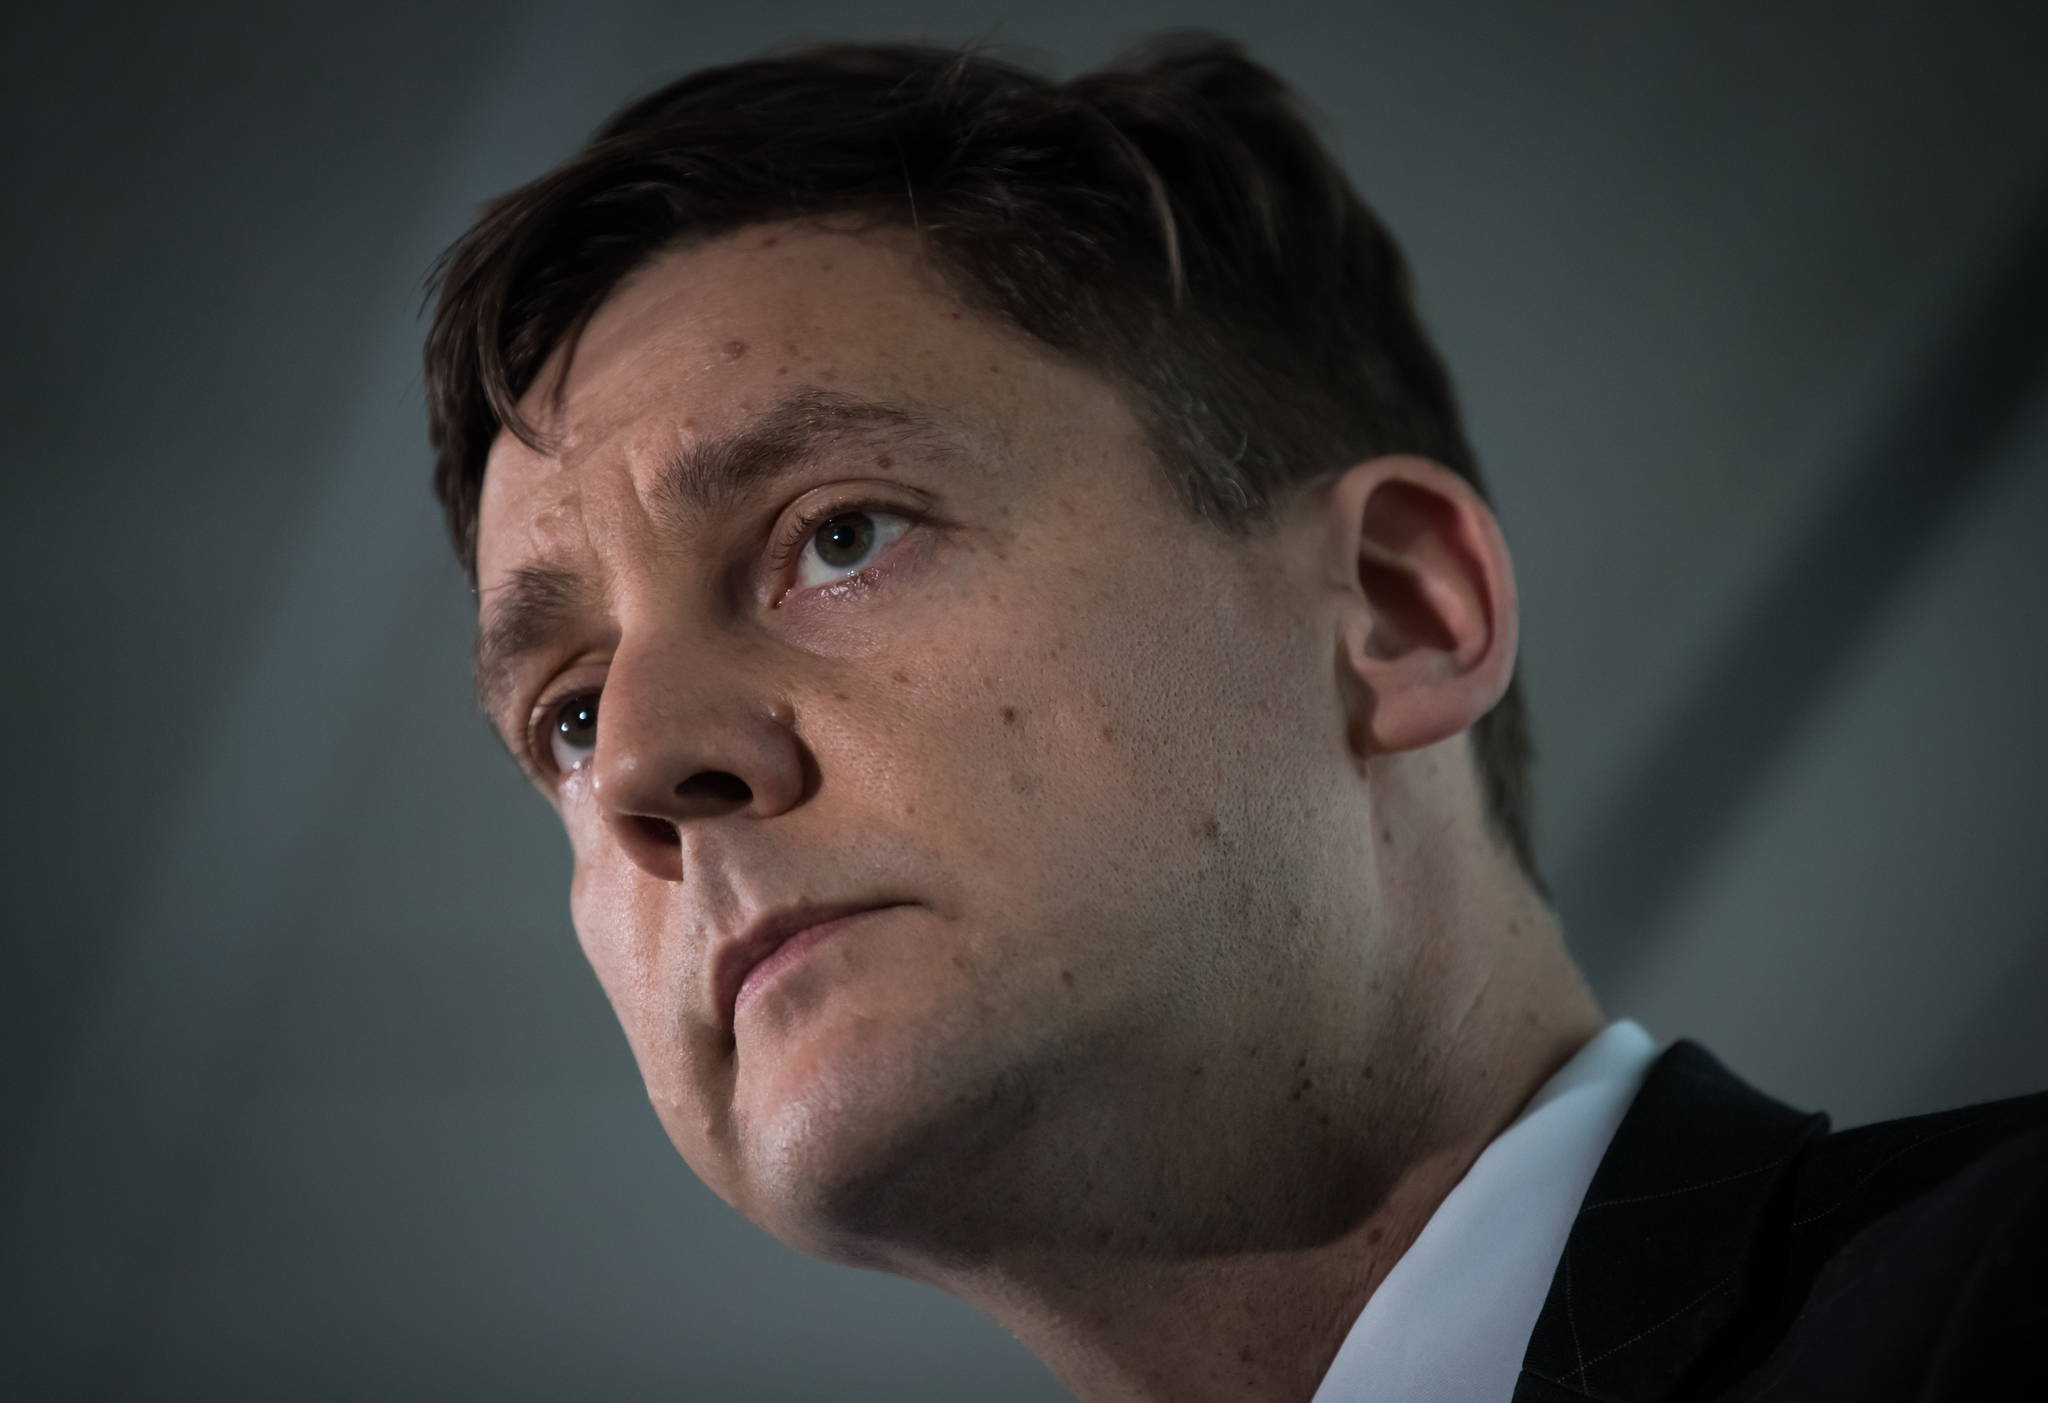 A national public inquiry into money laundering is a good thing no matter which party wins the federal election, says British Columbia's attorney general. British Columbia Attorney General David Eby looks on during a news conference in Vancouver, Friday, May 24, 2019. THE CANADIAN PRESS/Darryl Dyck